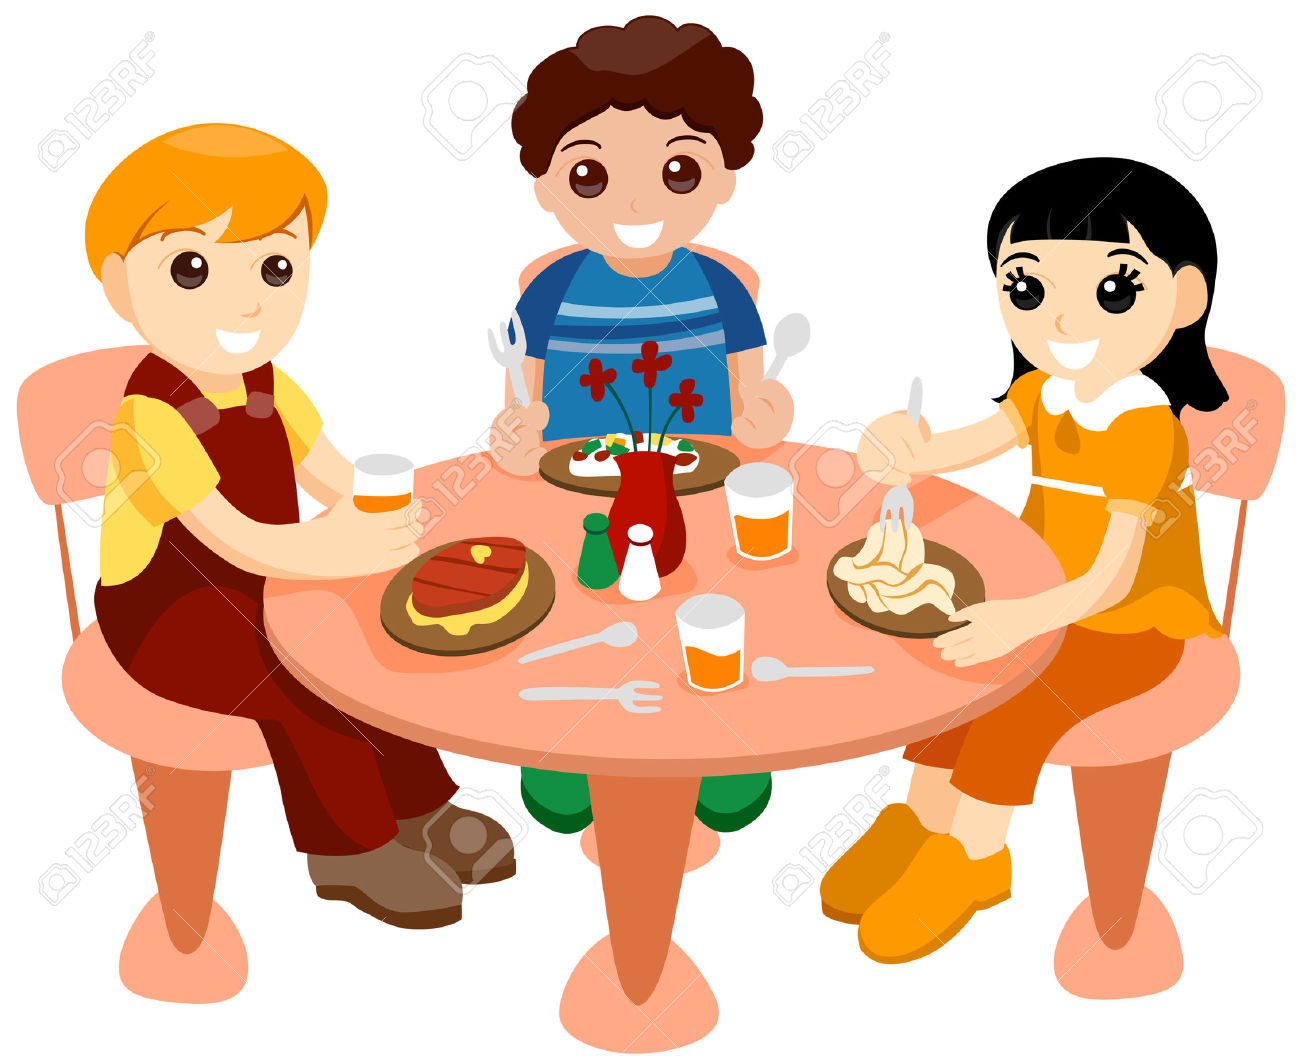 Eating Lunch With Friends Clipart.